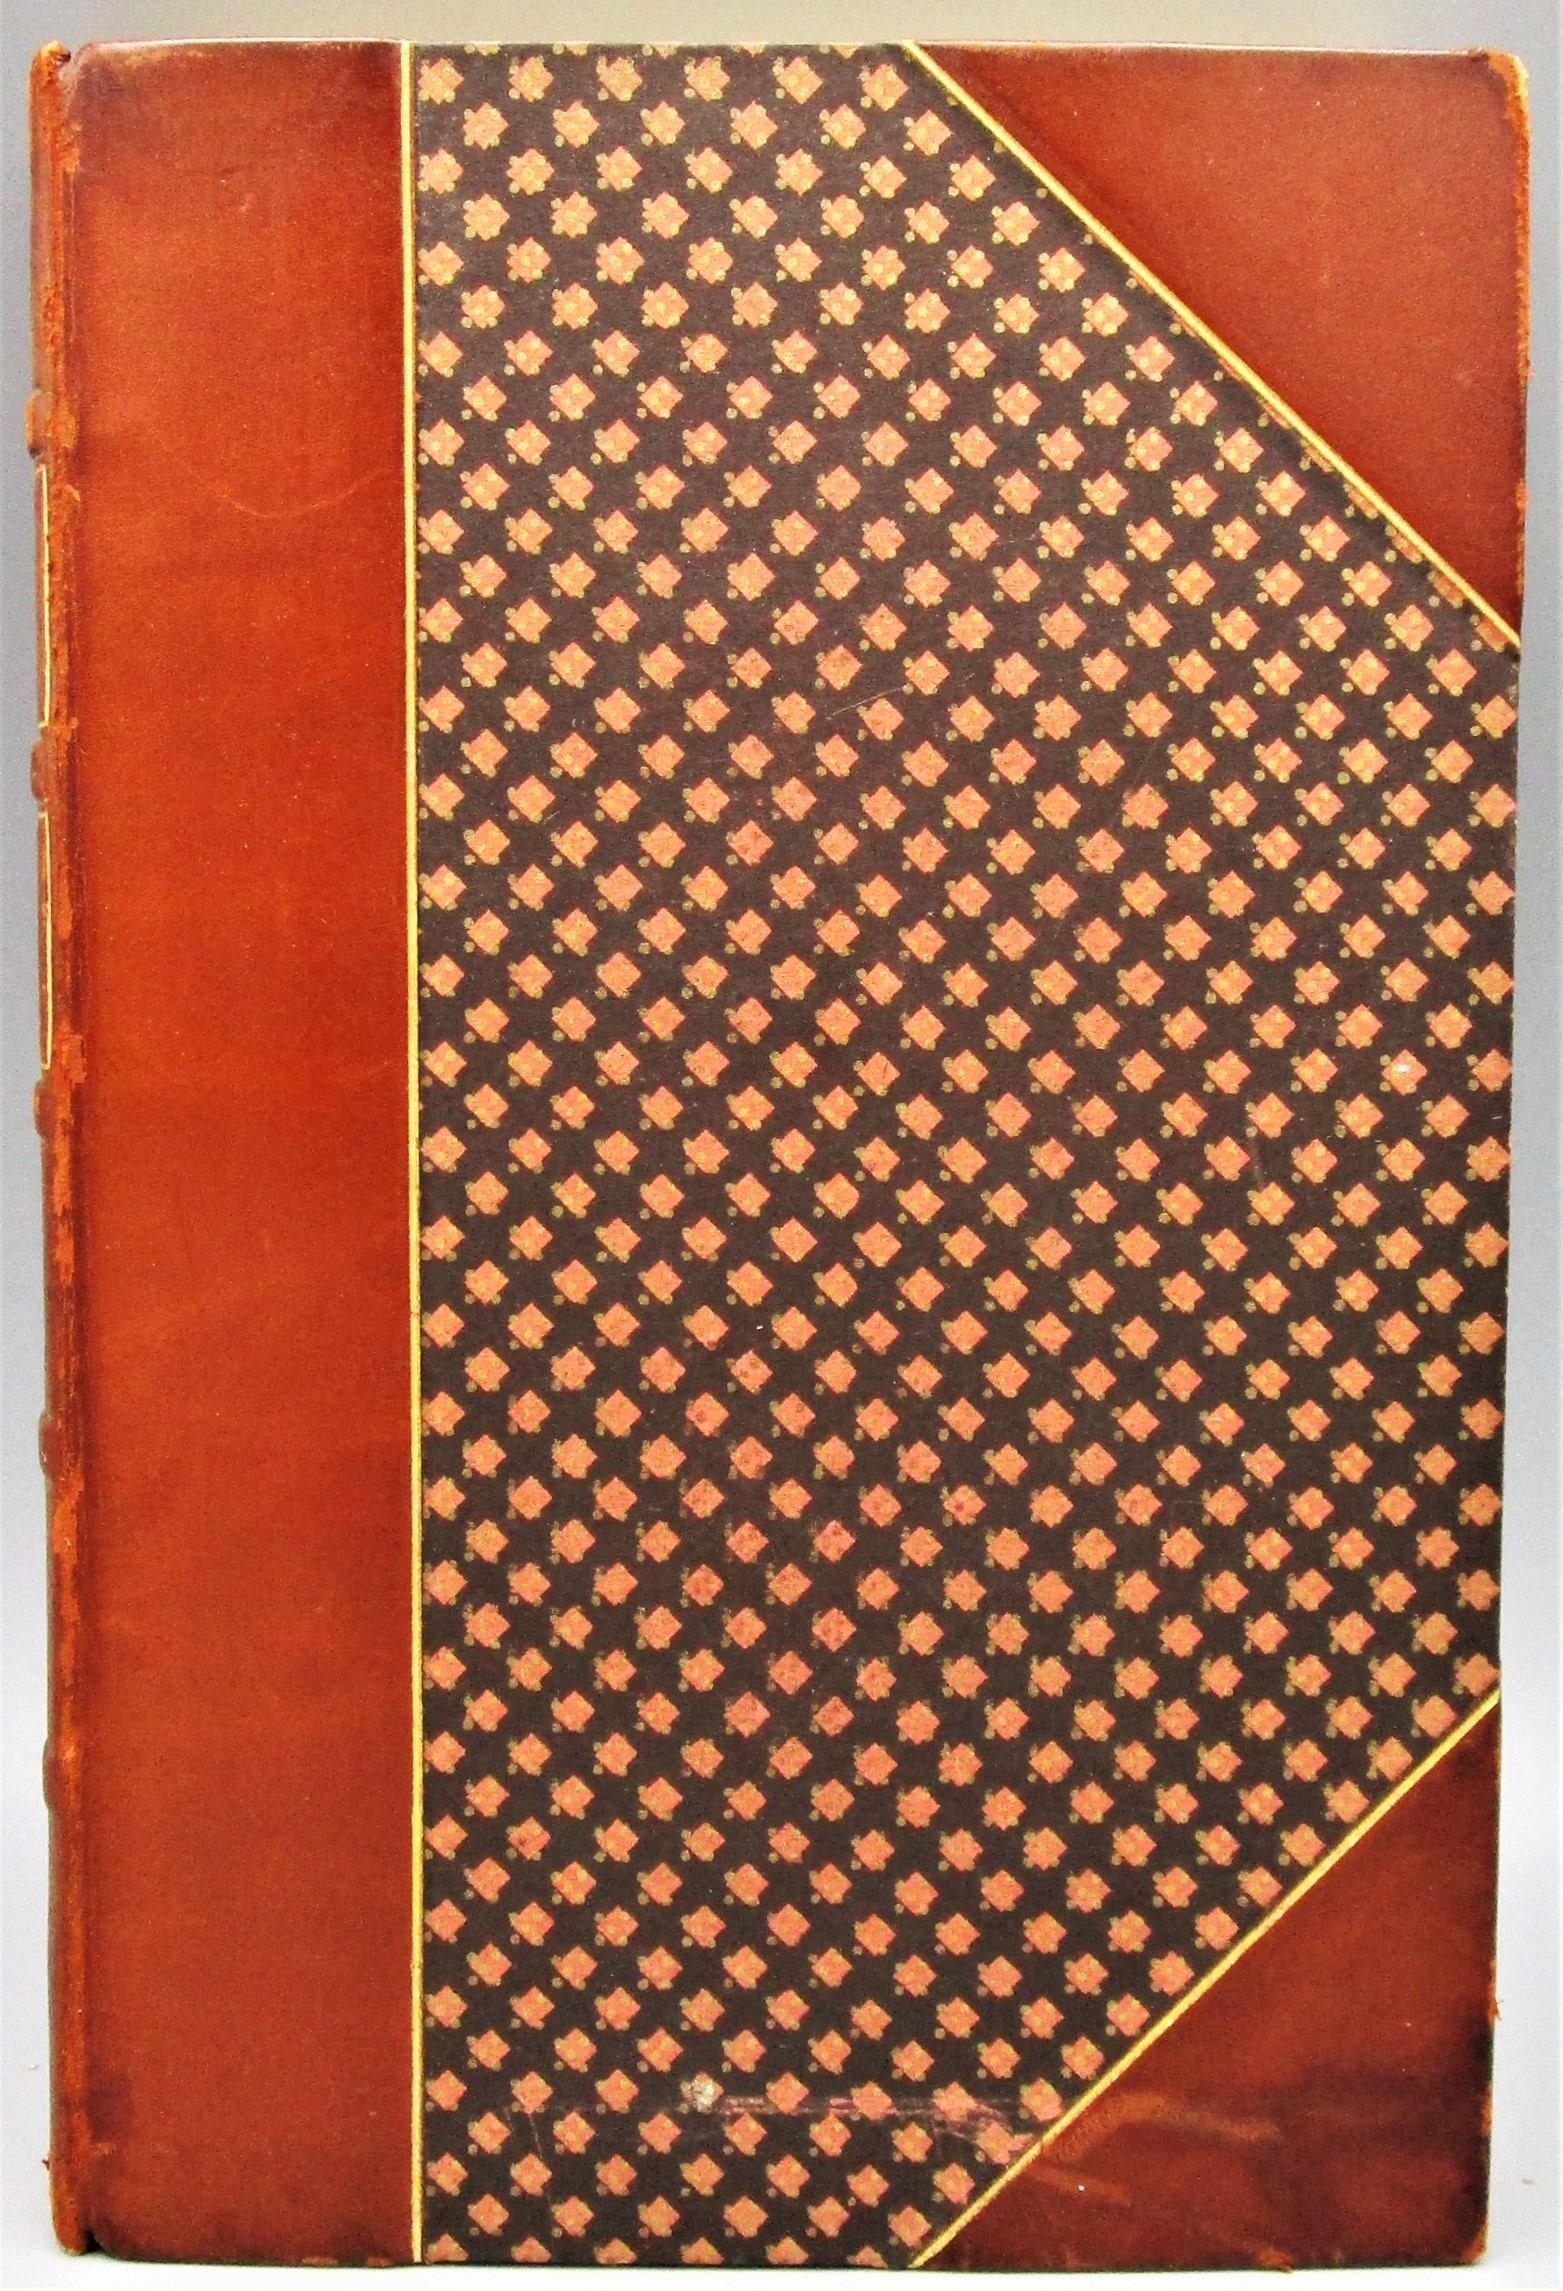 SONGS AND POEMS: OLD AND NEW, by William Sharp - 1909 [1st Ed]